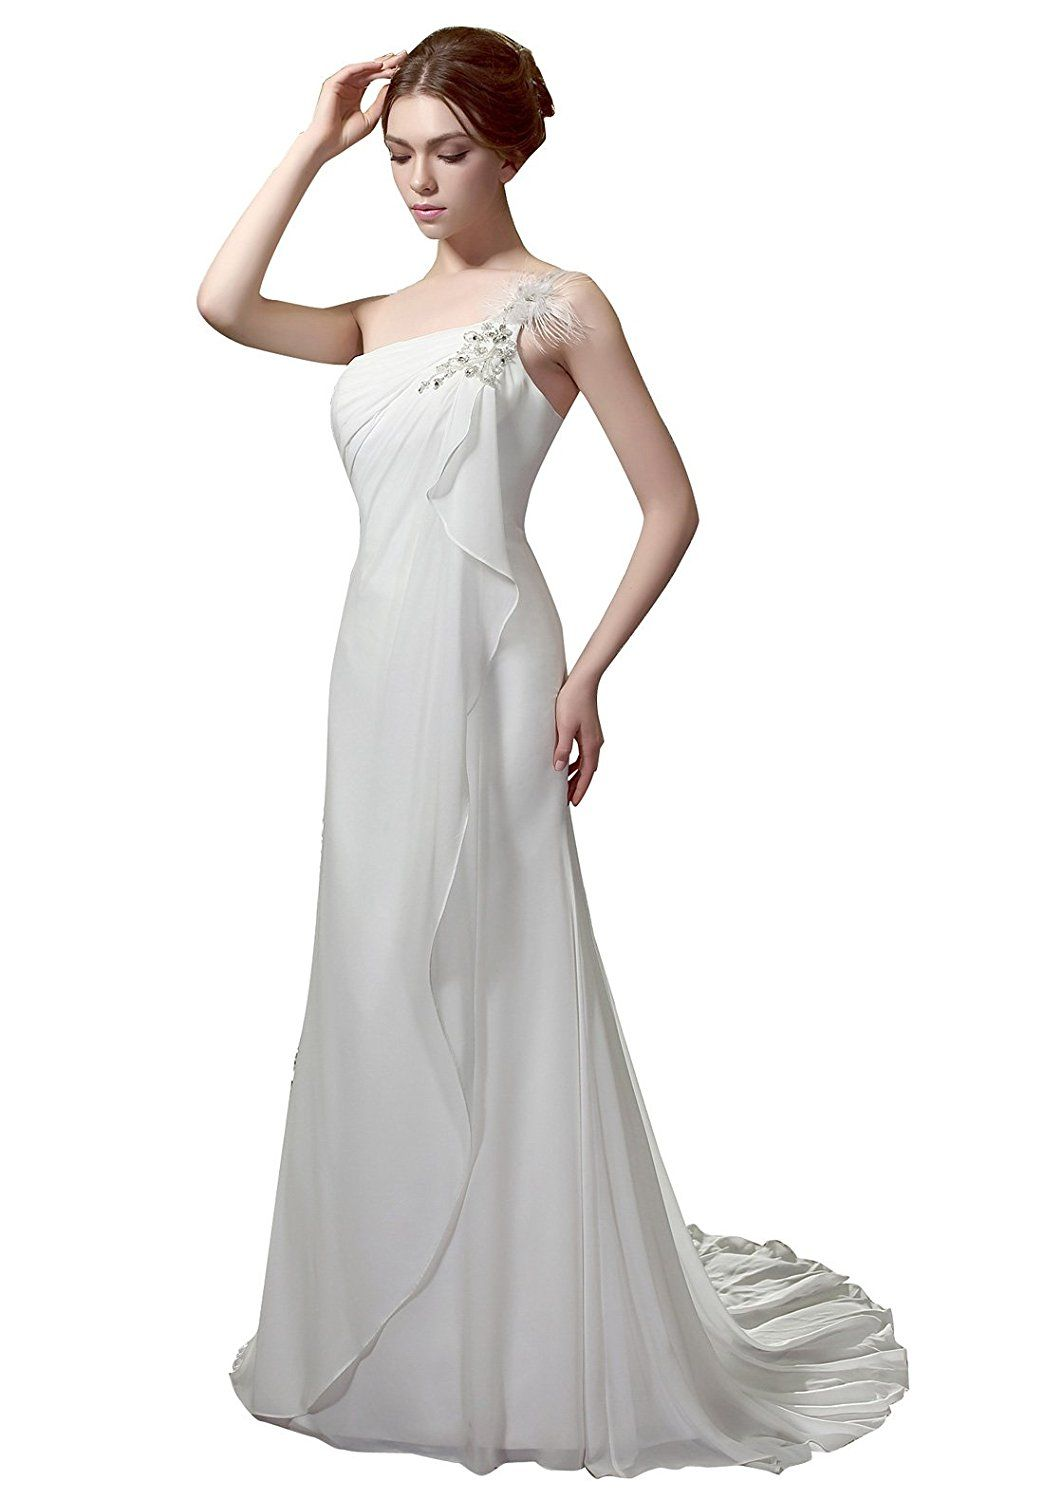 Chiffon wedding dresses  HeleneBridal Simple Informal Sheath One Shoulder Chiffon Wedding